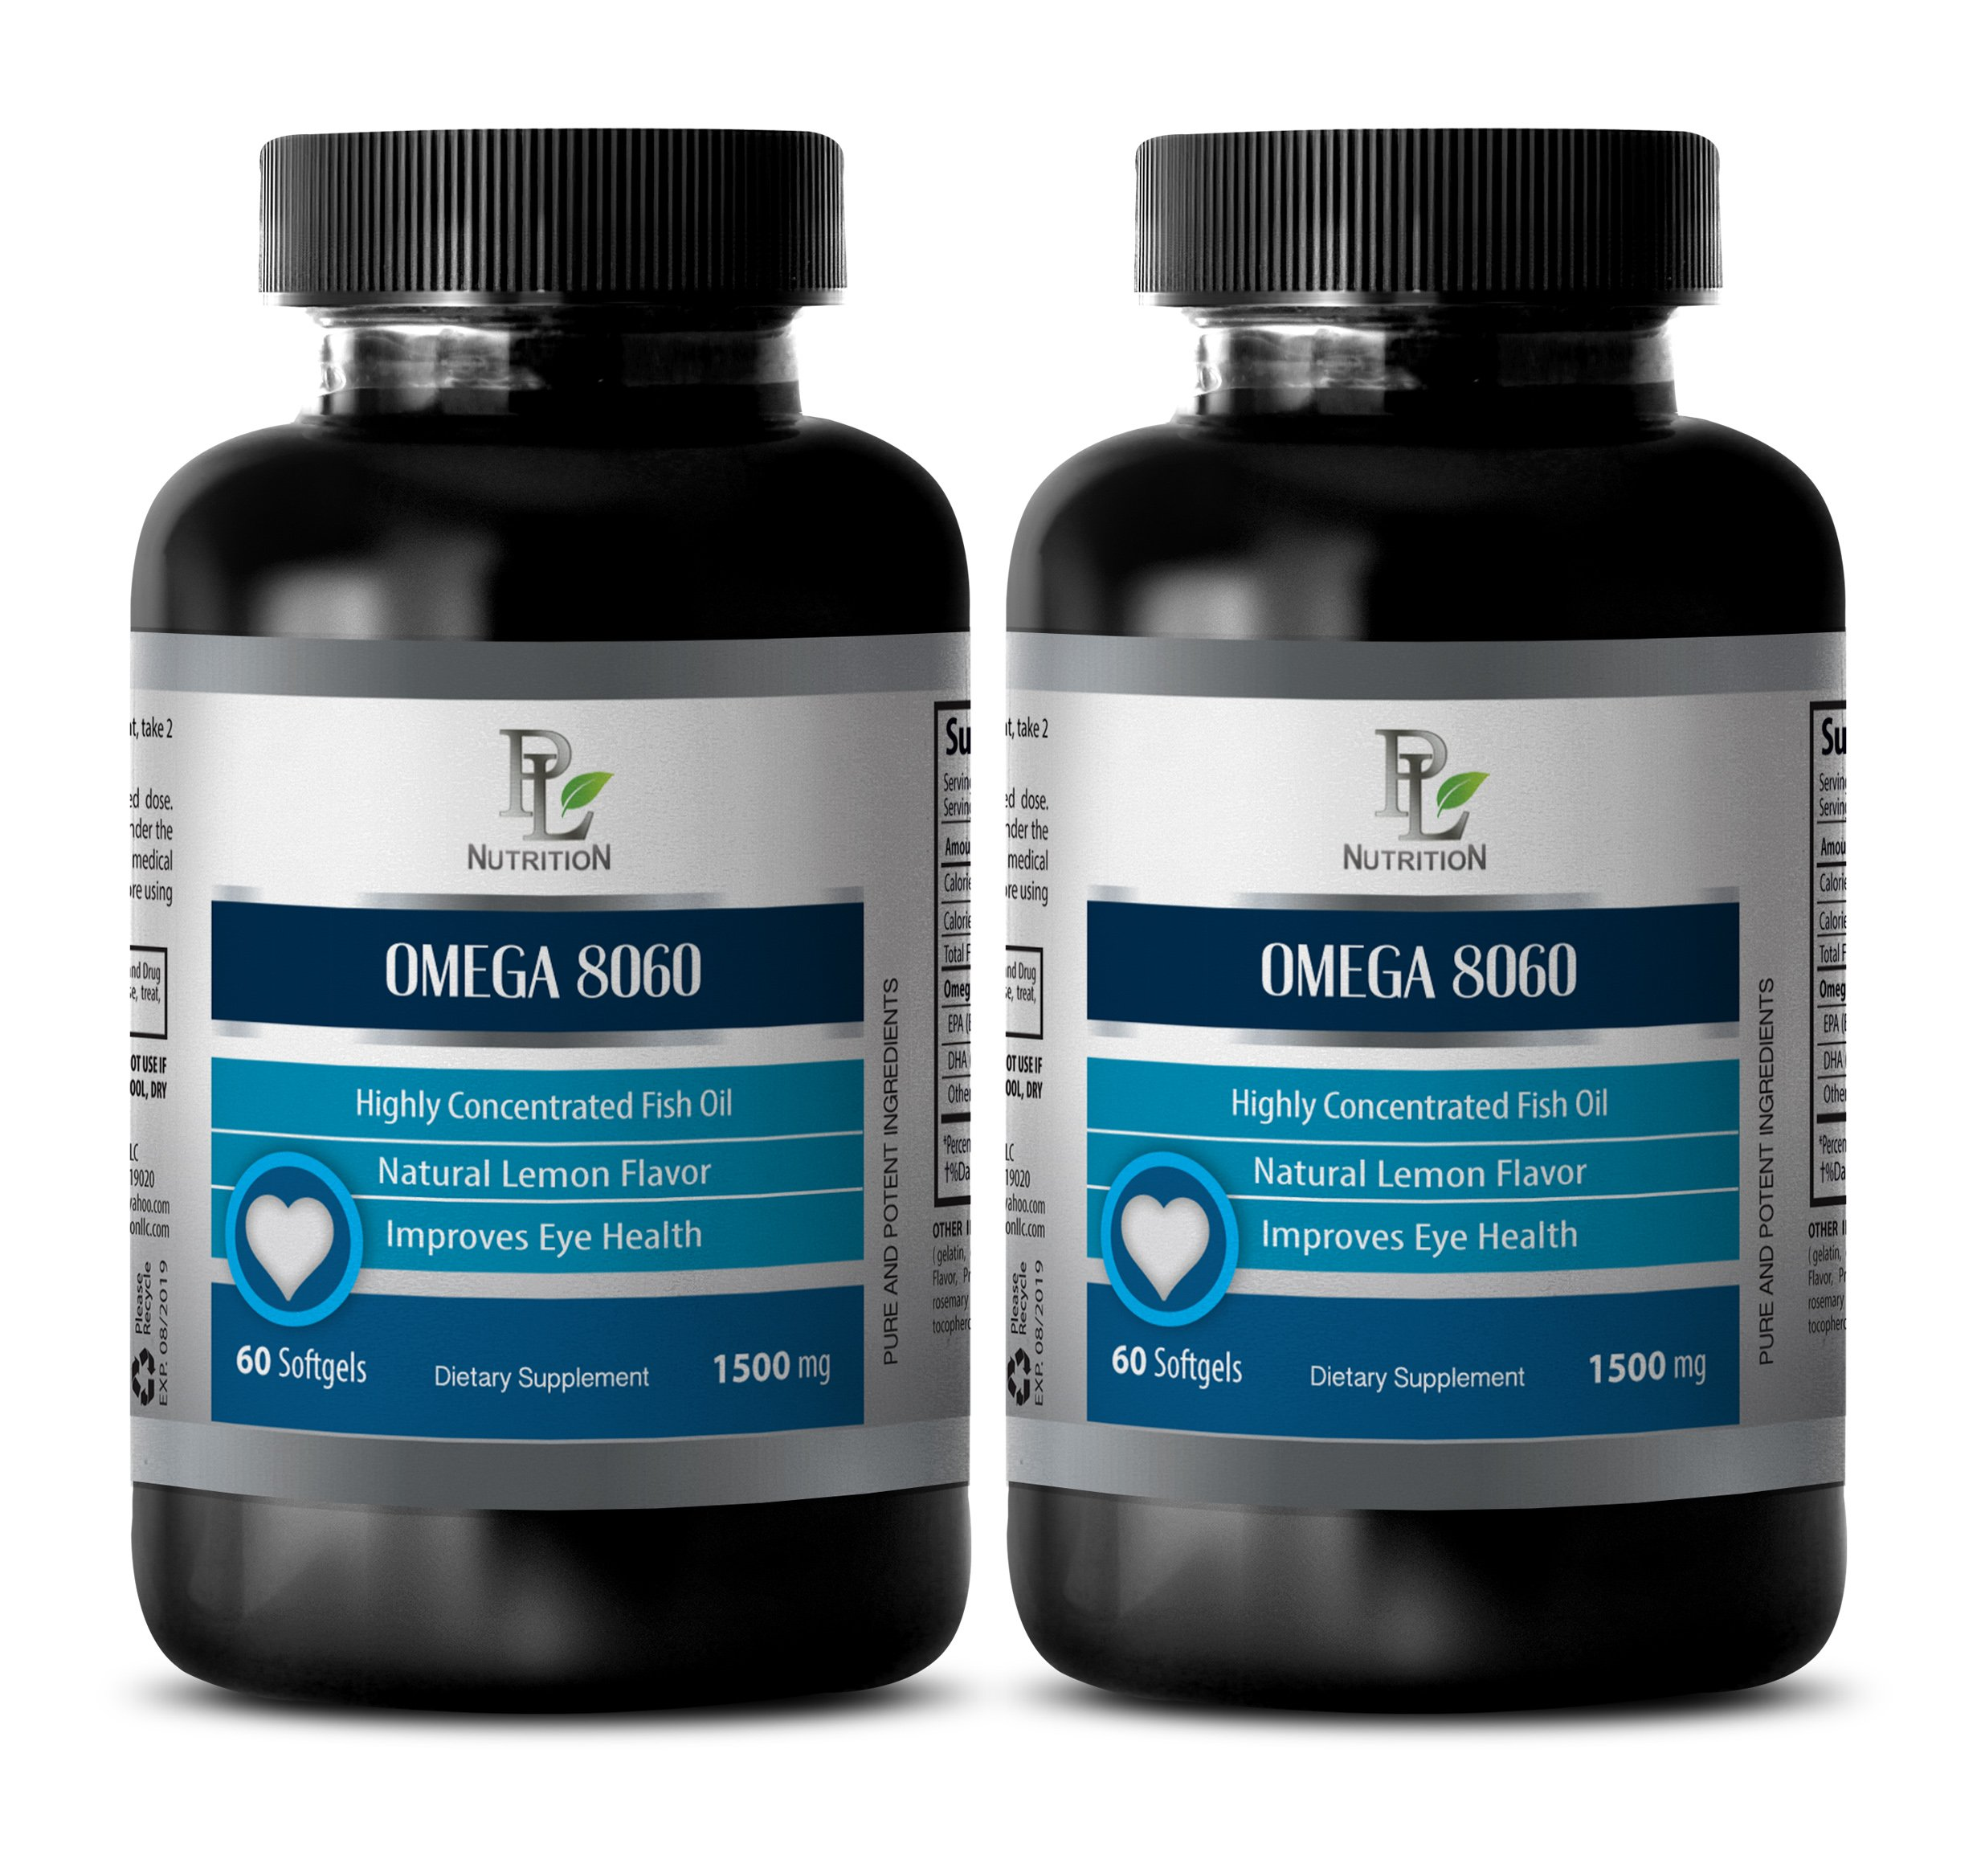 Eye supplement - OMEGA 8060 HIGHLY CONCENTRATED FISH OIL - Omega 3 with dha - 2 Bottle 120 Softgels by PL NUTRITION